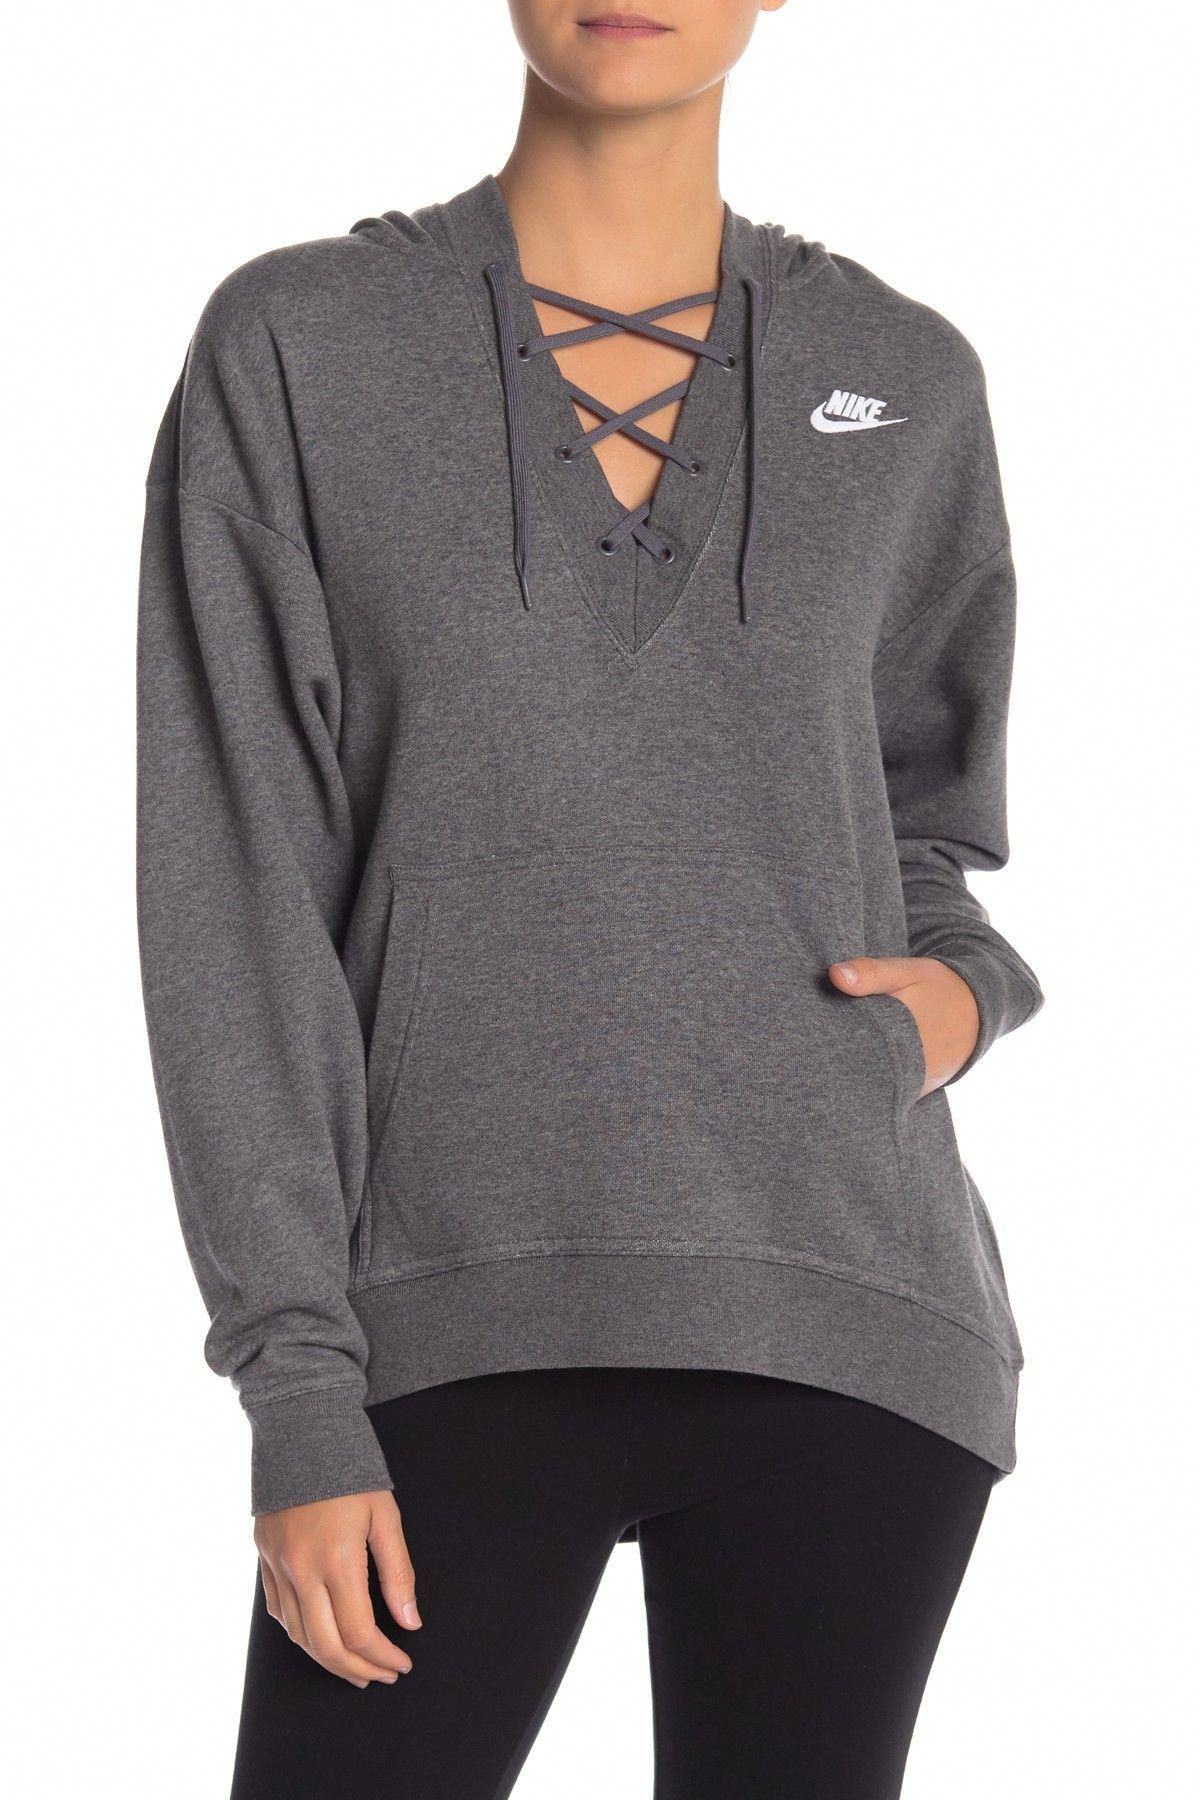 8d11d61d939f Club Lace-Up Hoodie by Nike on  nordstrom rack  WorkoutClothingWomen s